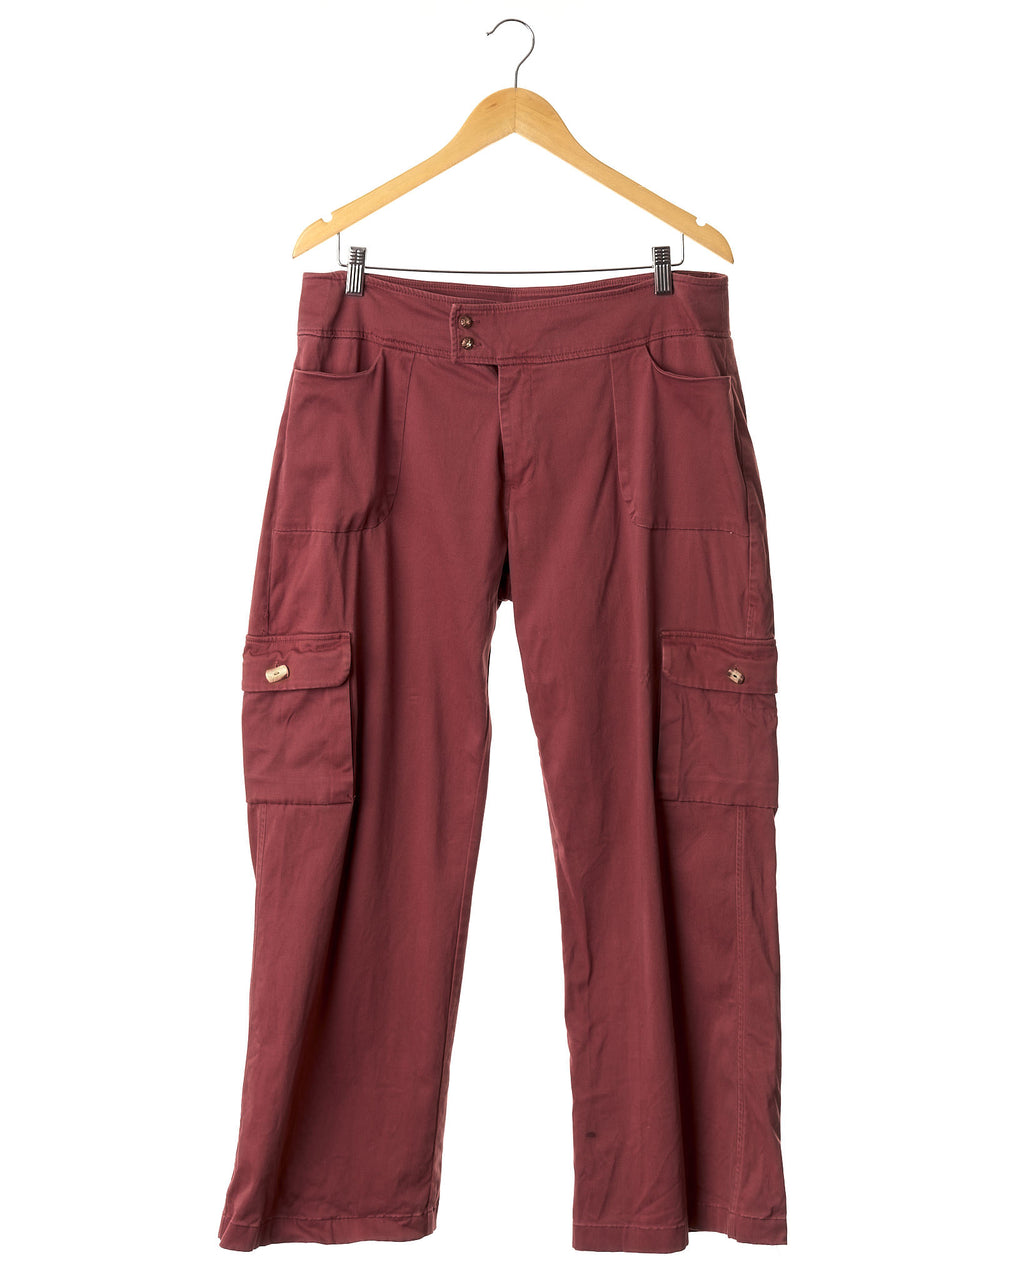 Blush Terracotta Utility Trousers